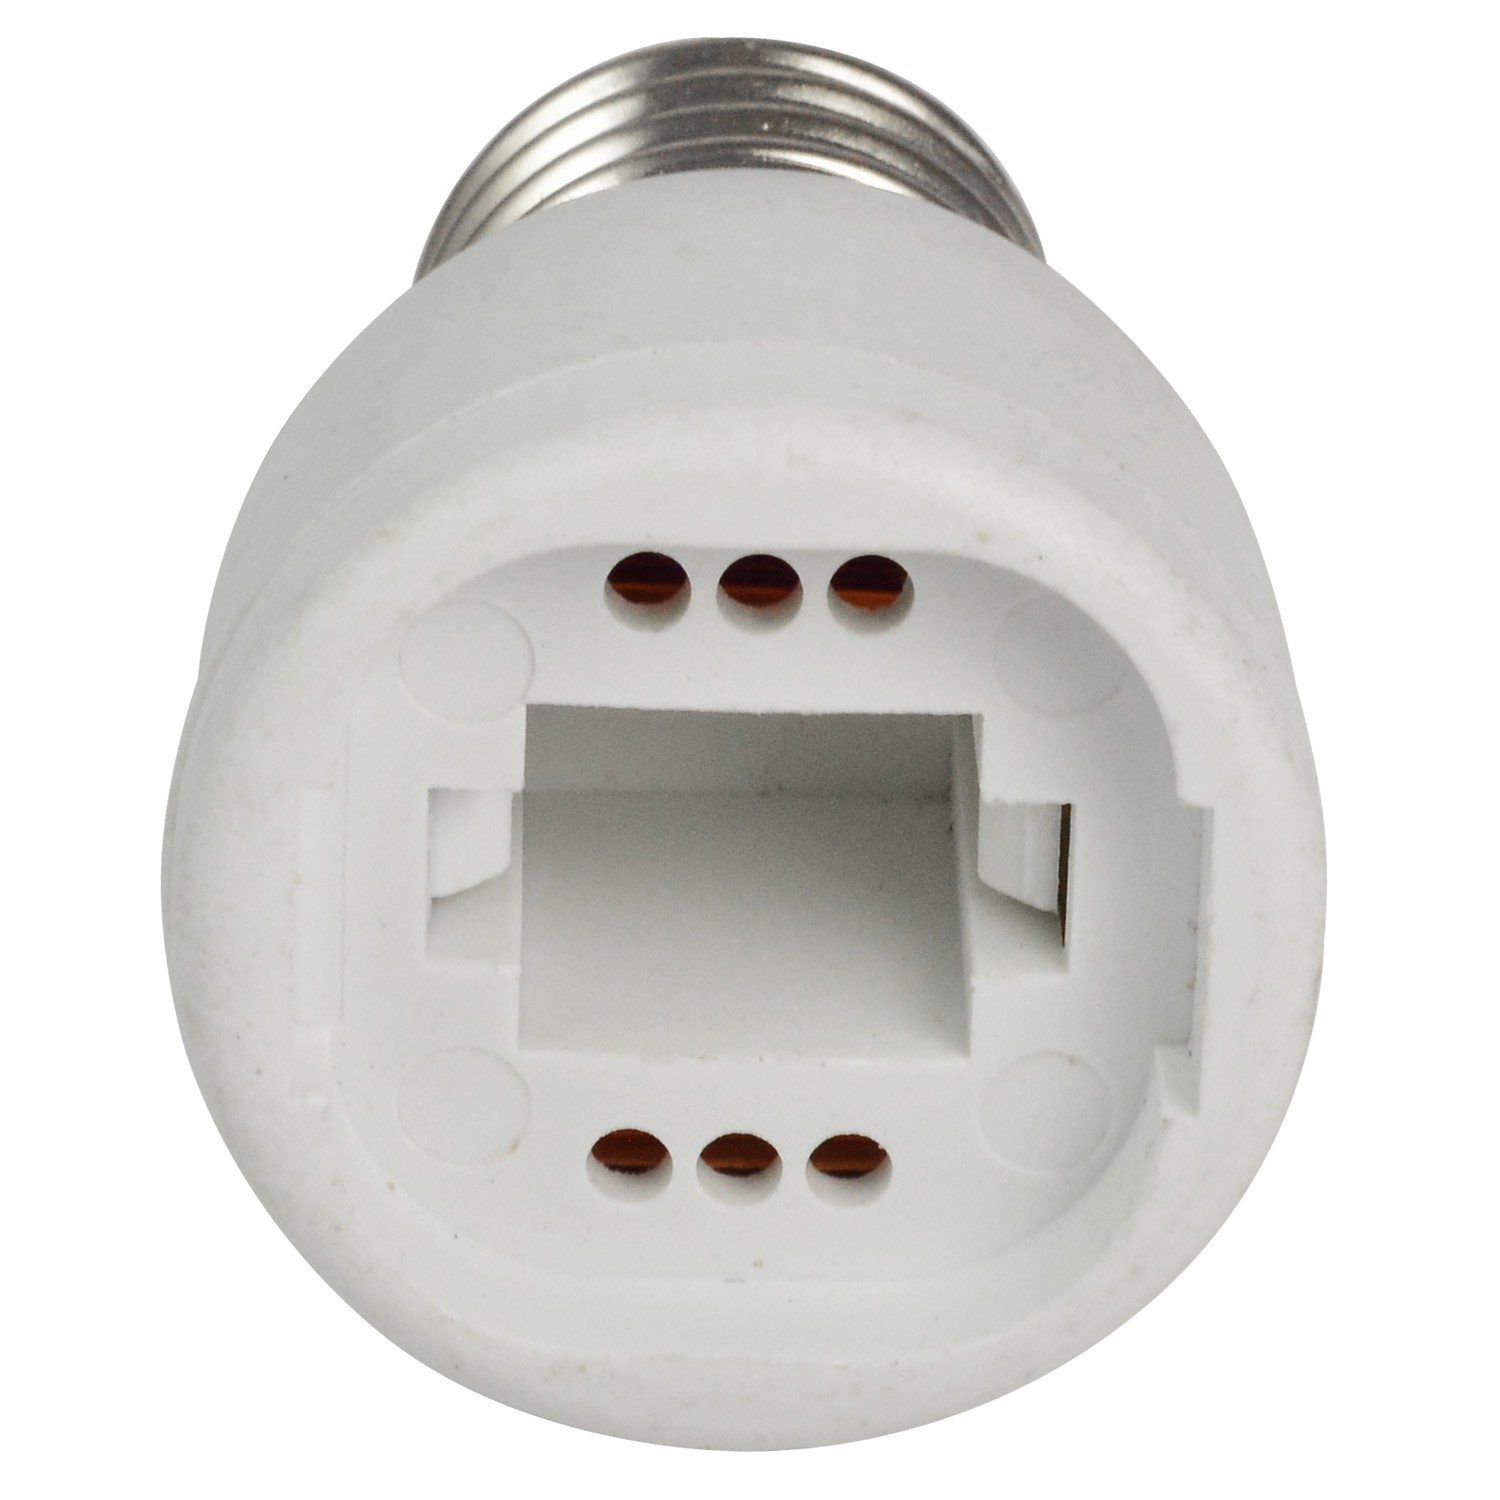 socket led bulb lamp adapter product light to lighting small base converter for